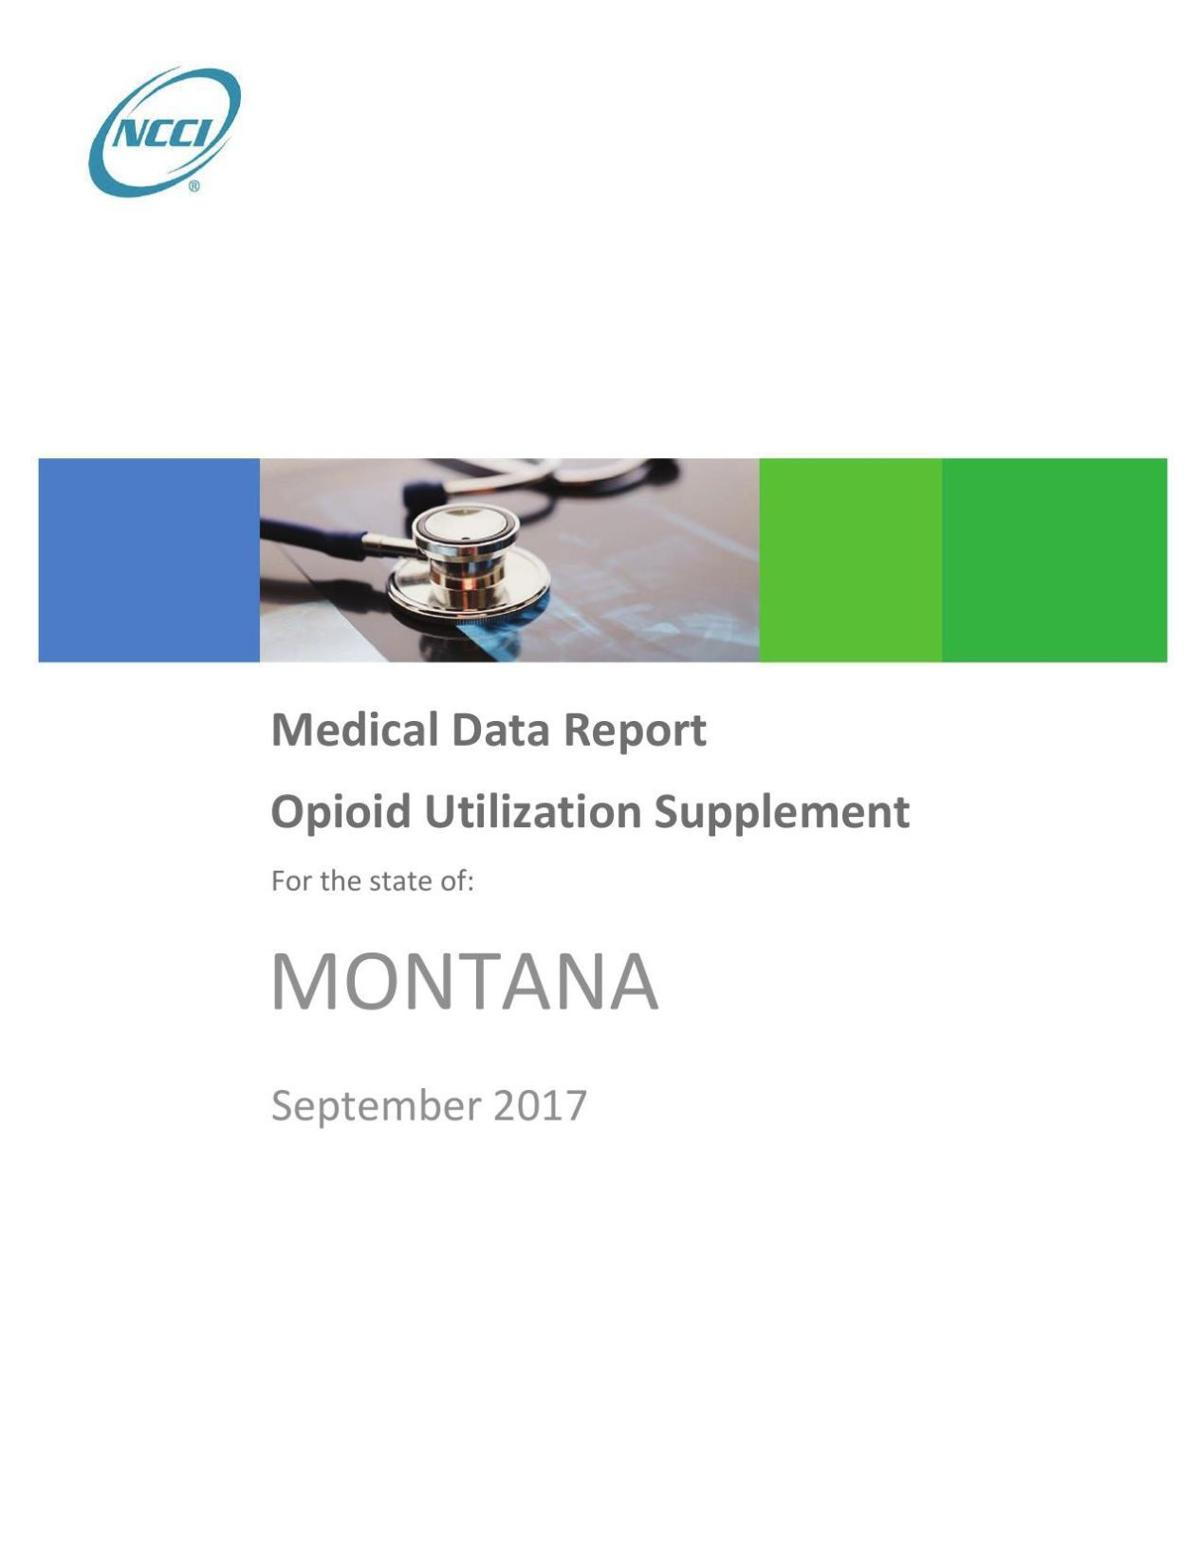 NCCI Medical Data Report